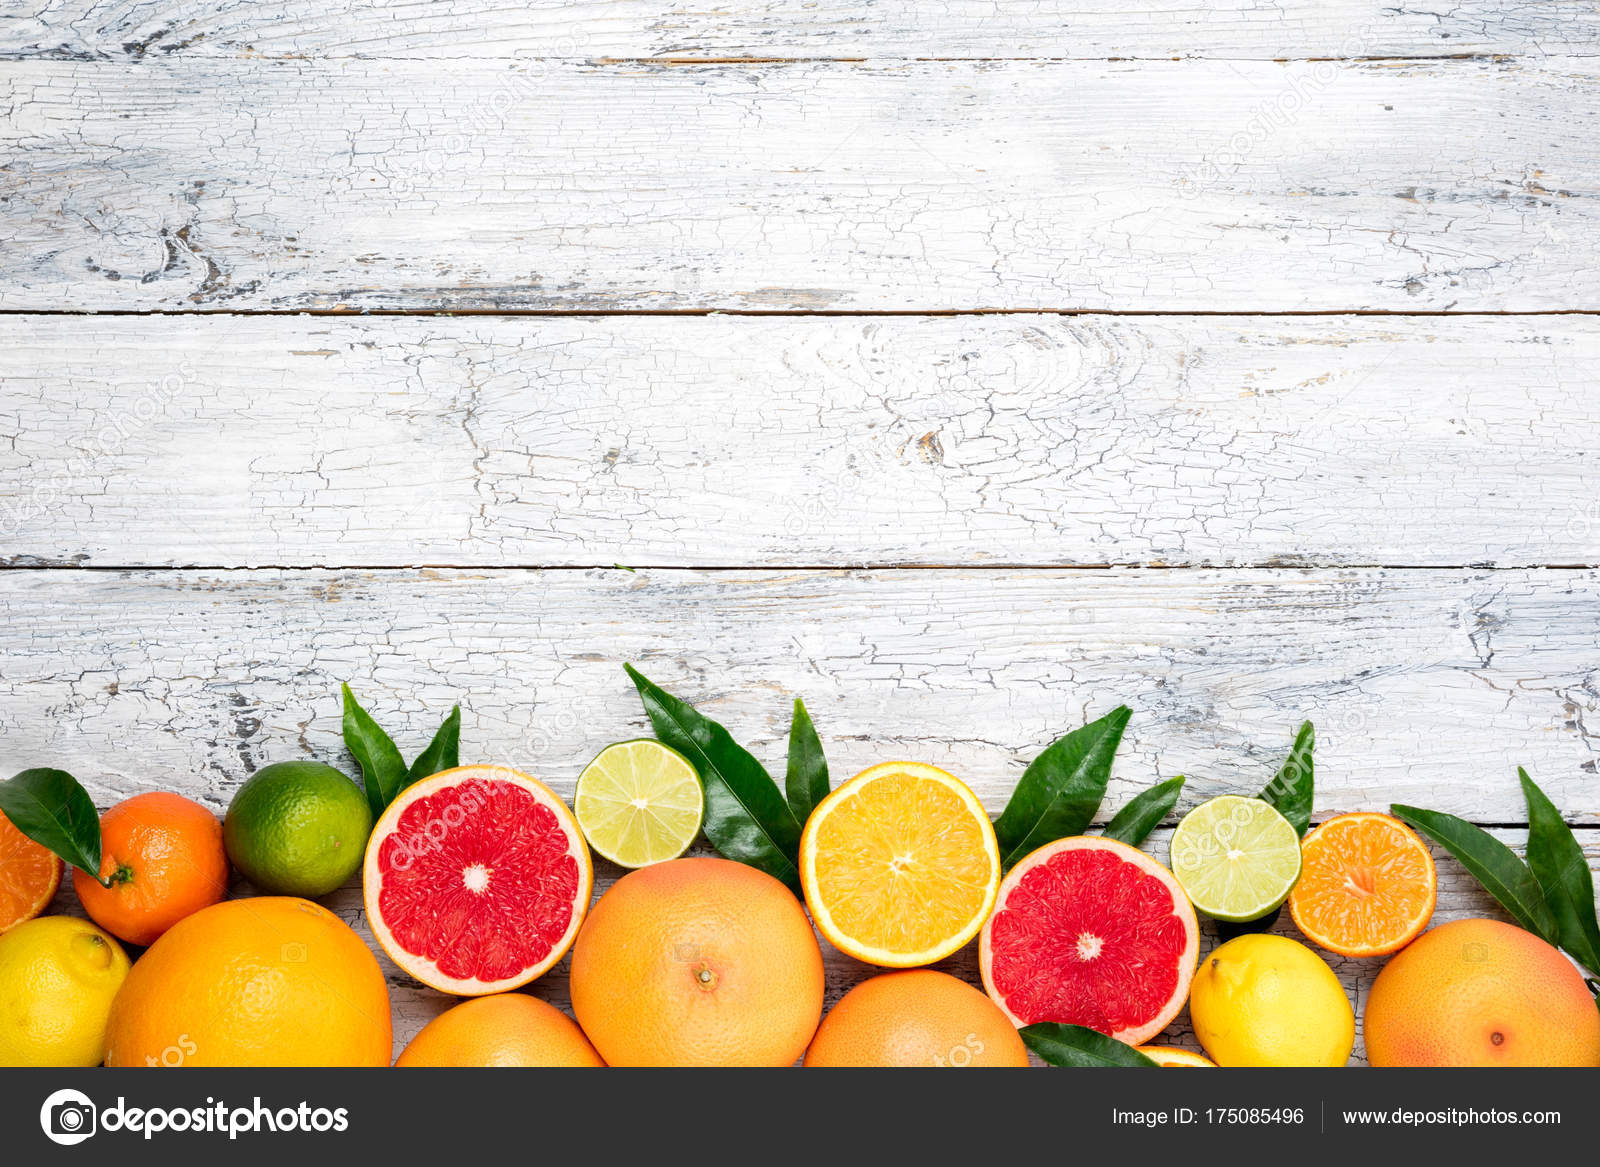 citrus fruits background fruits in basket orange